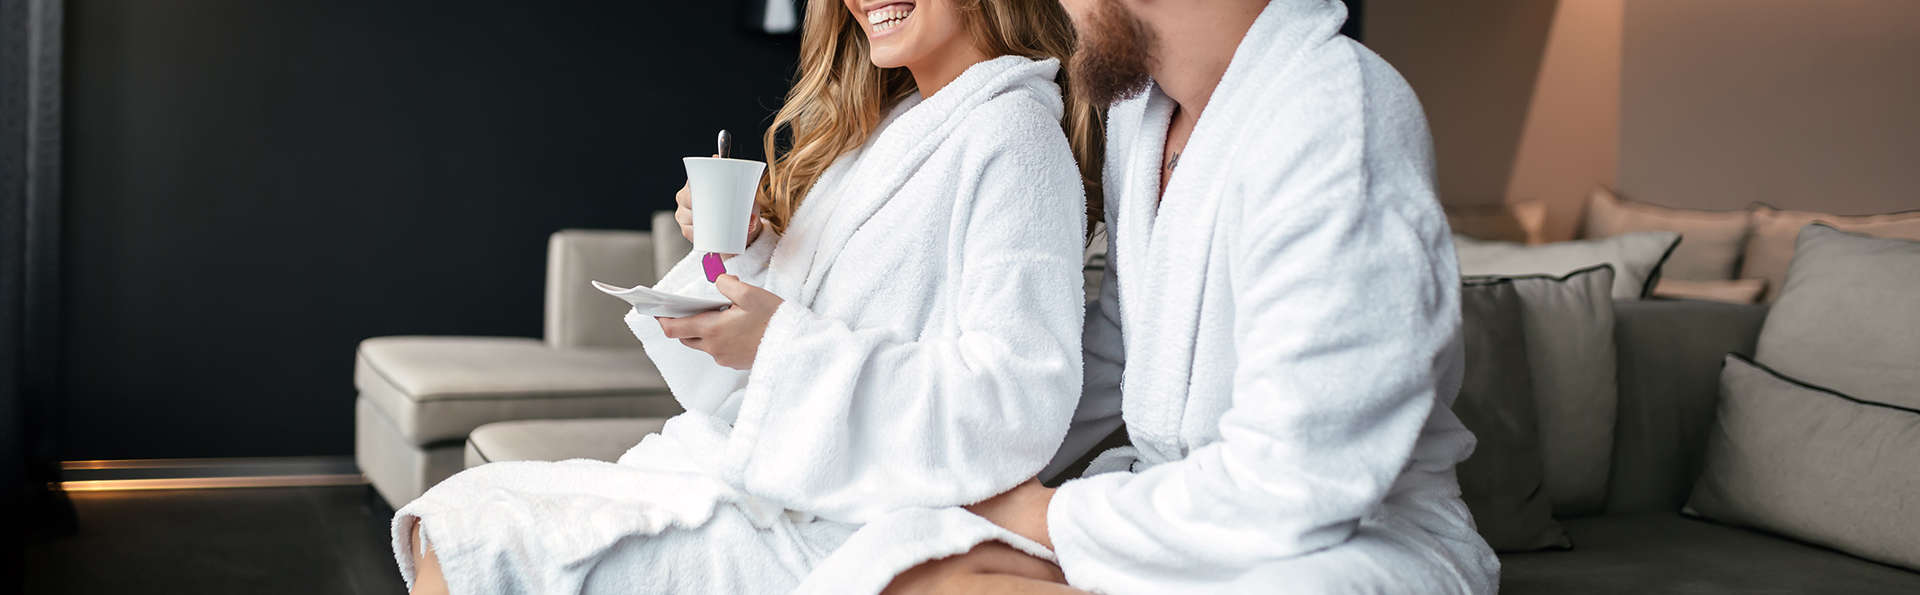 Week-end romantique et détente en amoureux dans le sauna et le jacuzzi privés (à partir de 2 nuits)